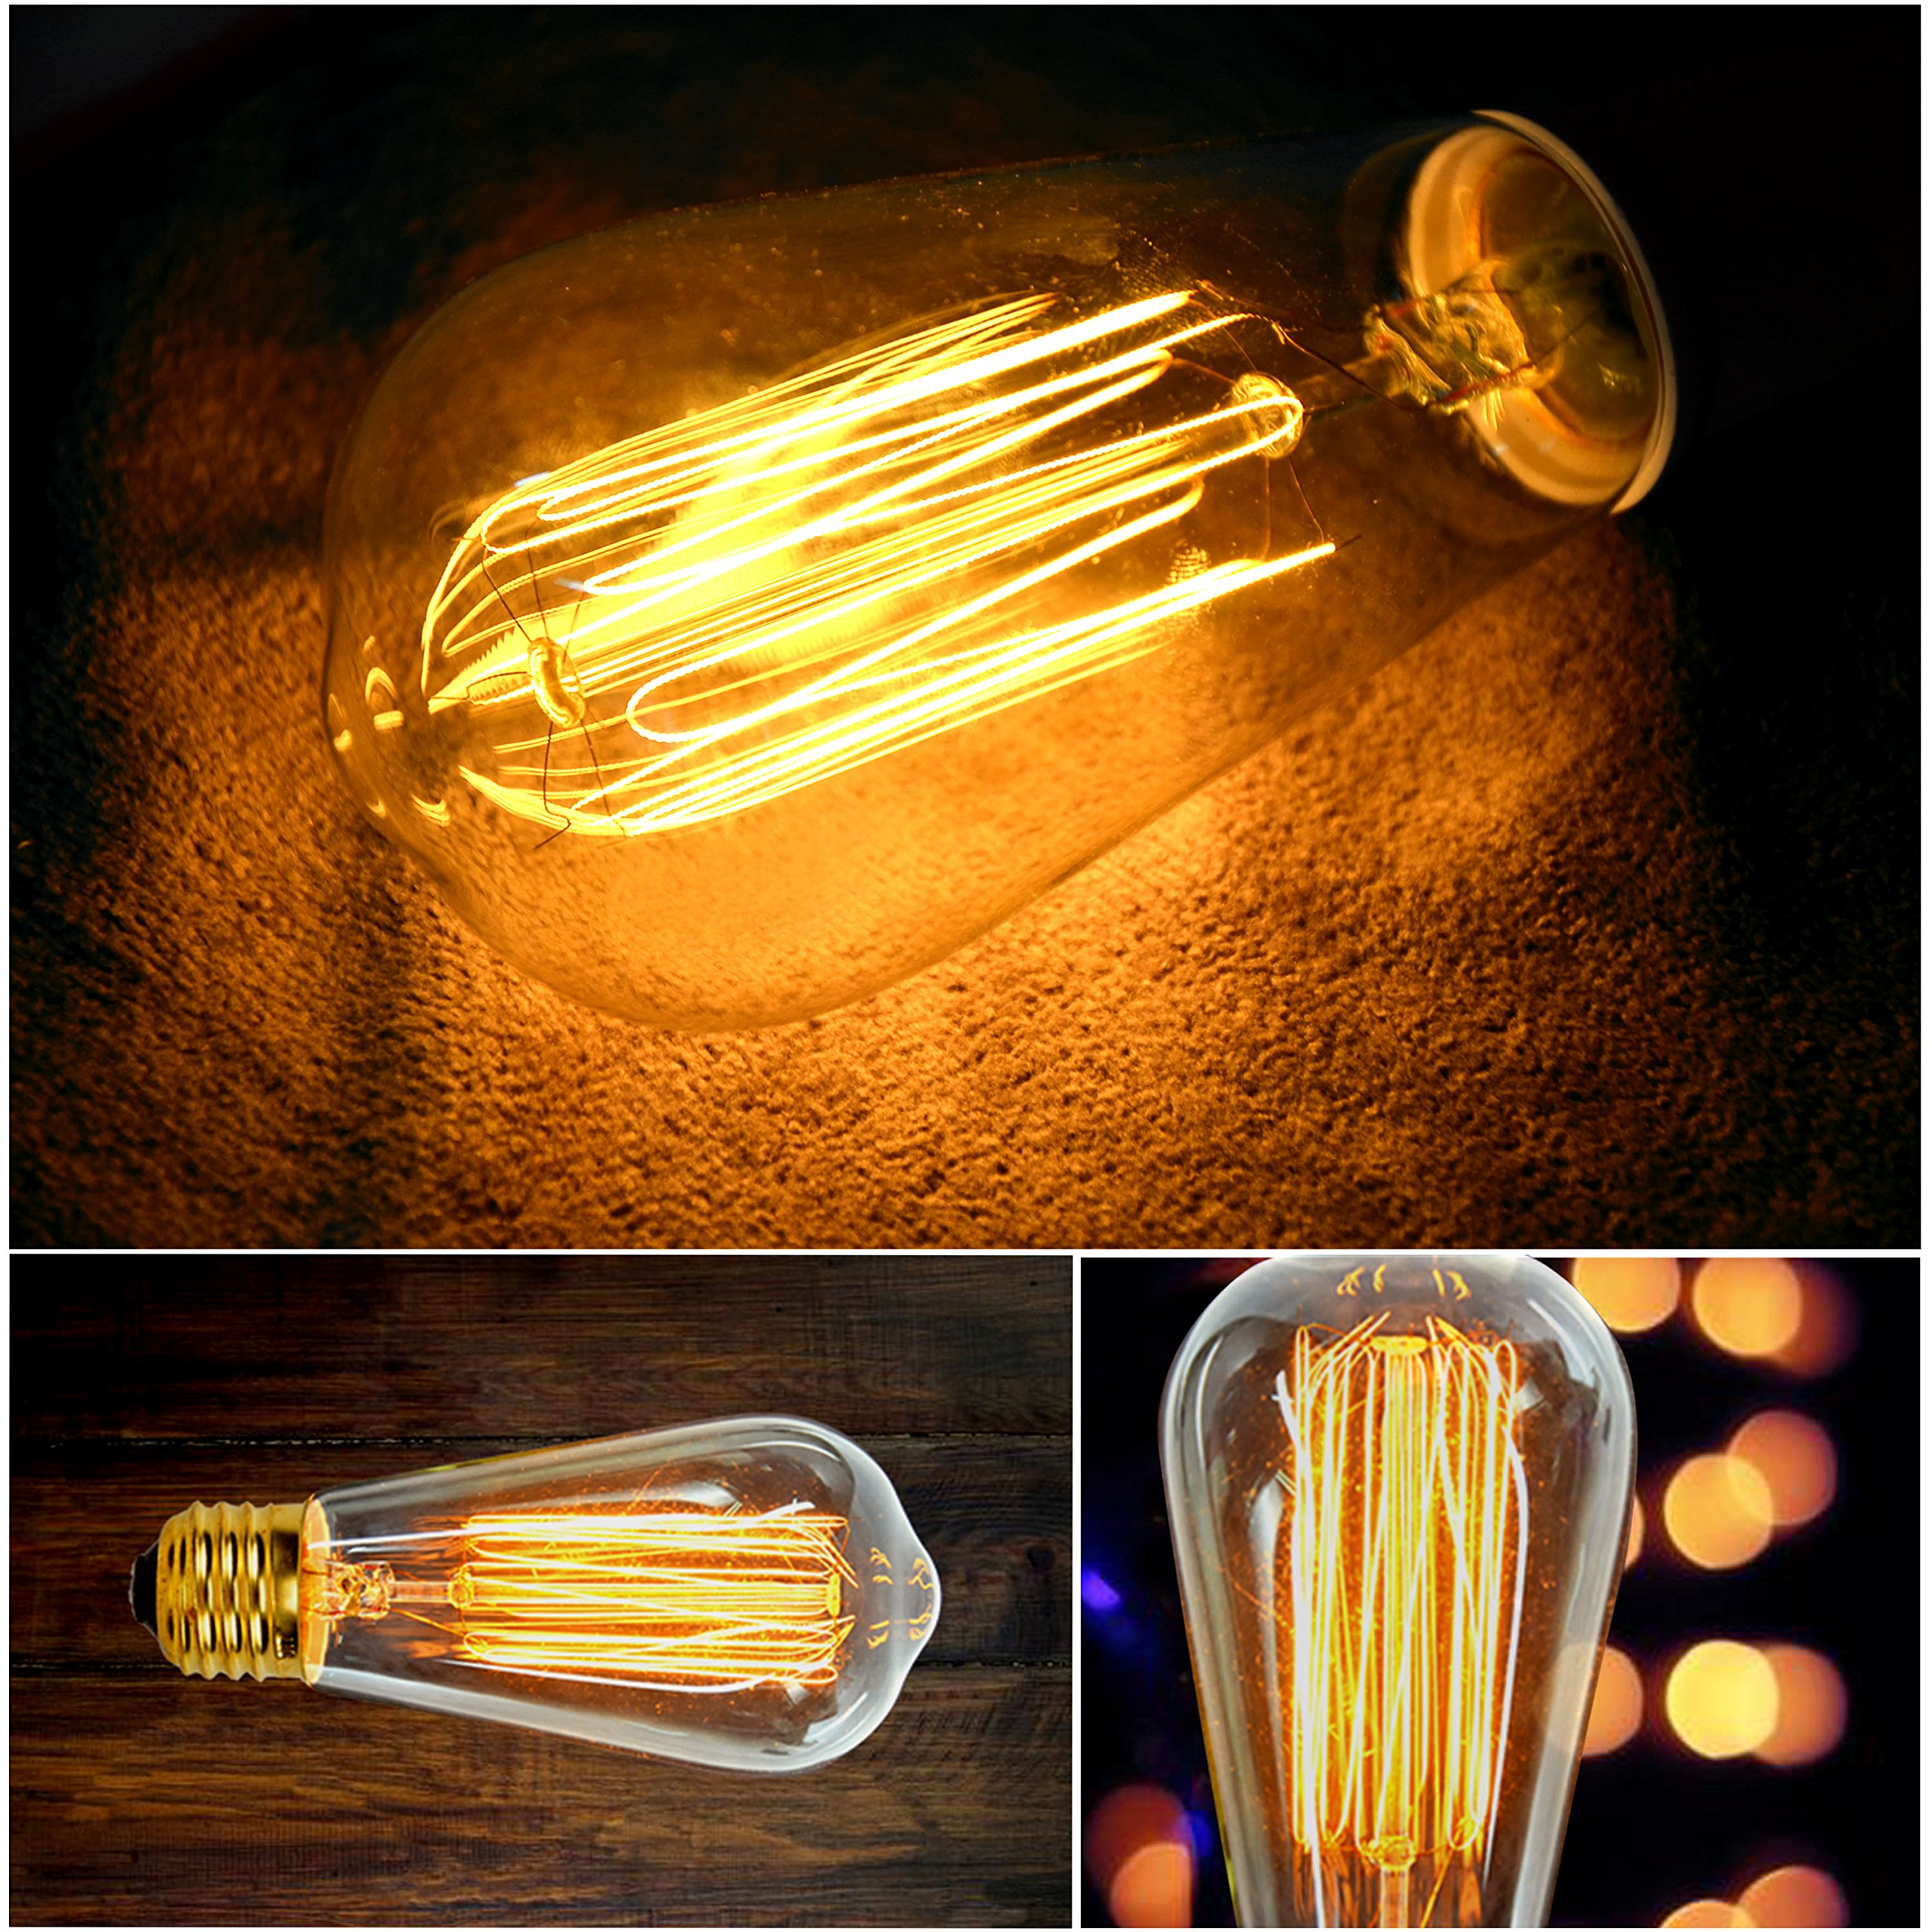 Vintage Edison Light Bulbs (6 Pack), 60W, ST64, E26, Squirrel Cage, Dimmable,Clear Glass, Industrial Vintage Incandescent Bulbs by Youngever (Image #2)